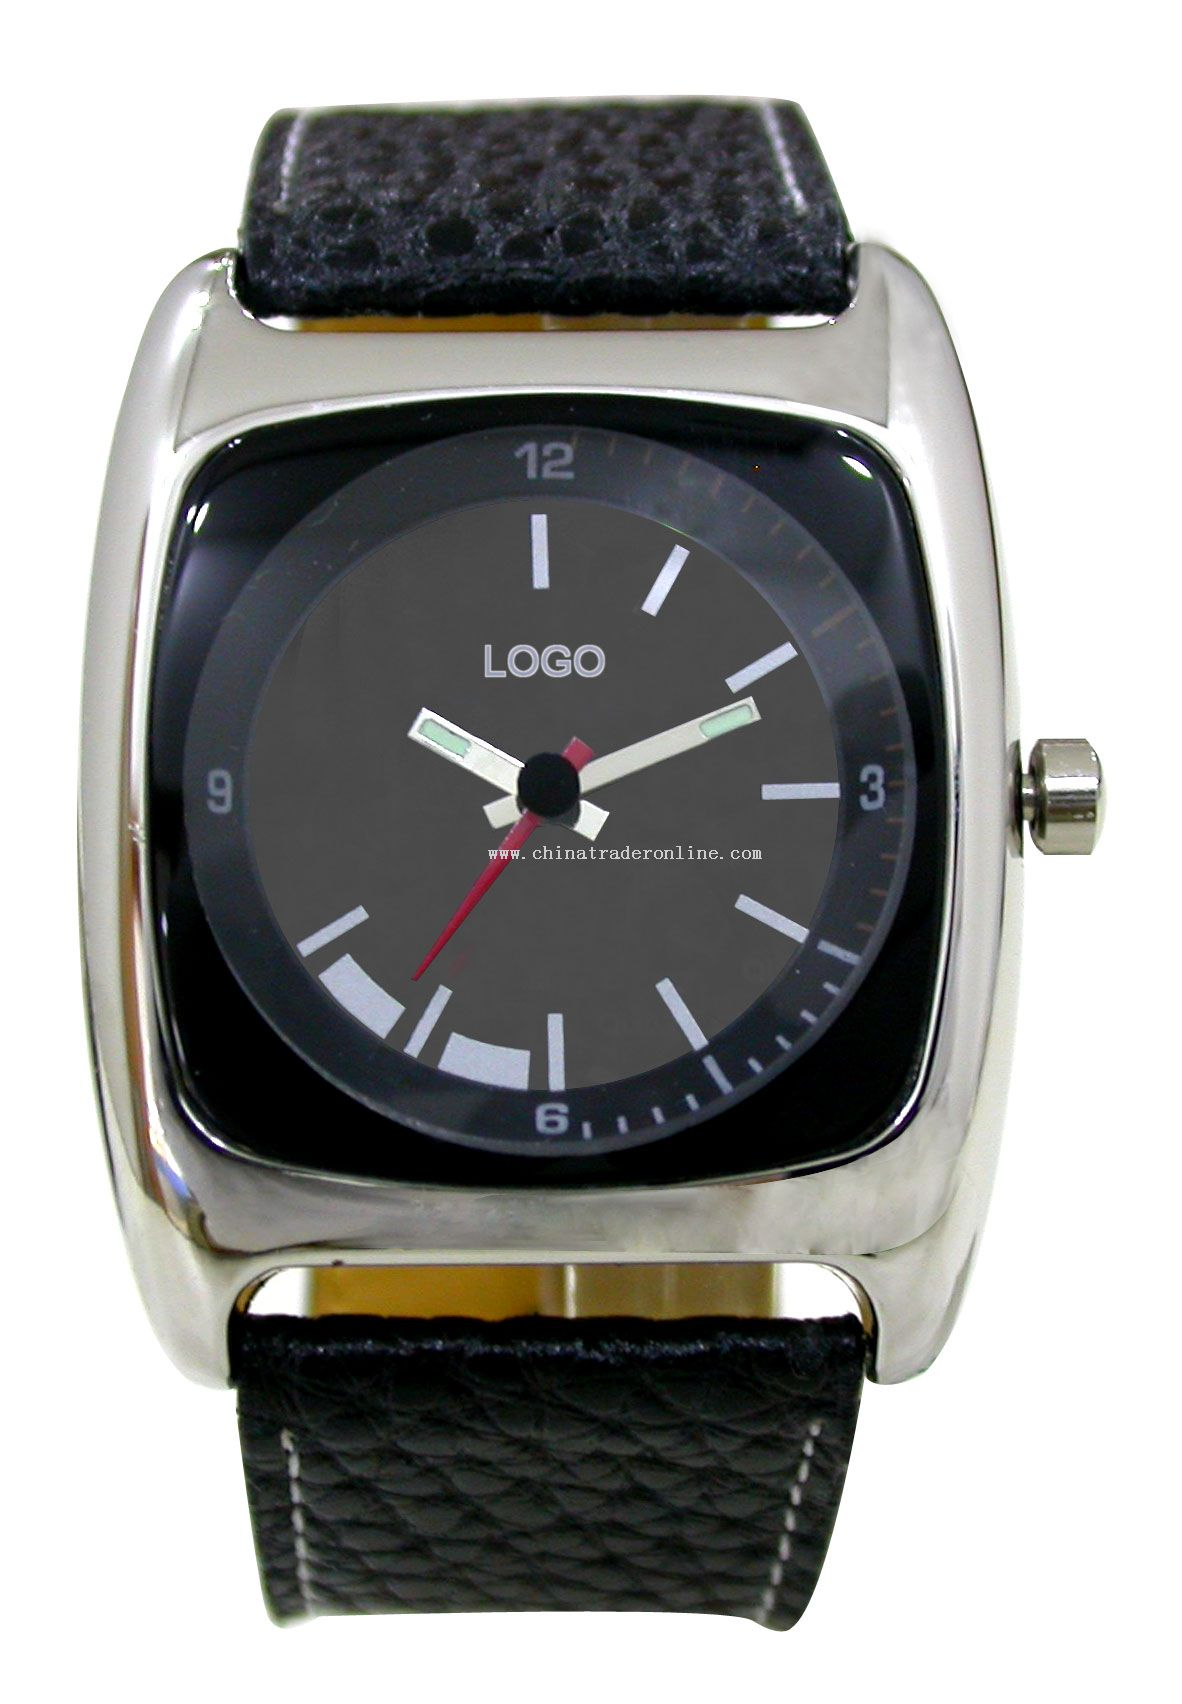 Discount mens watches - Buy luxury watches online